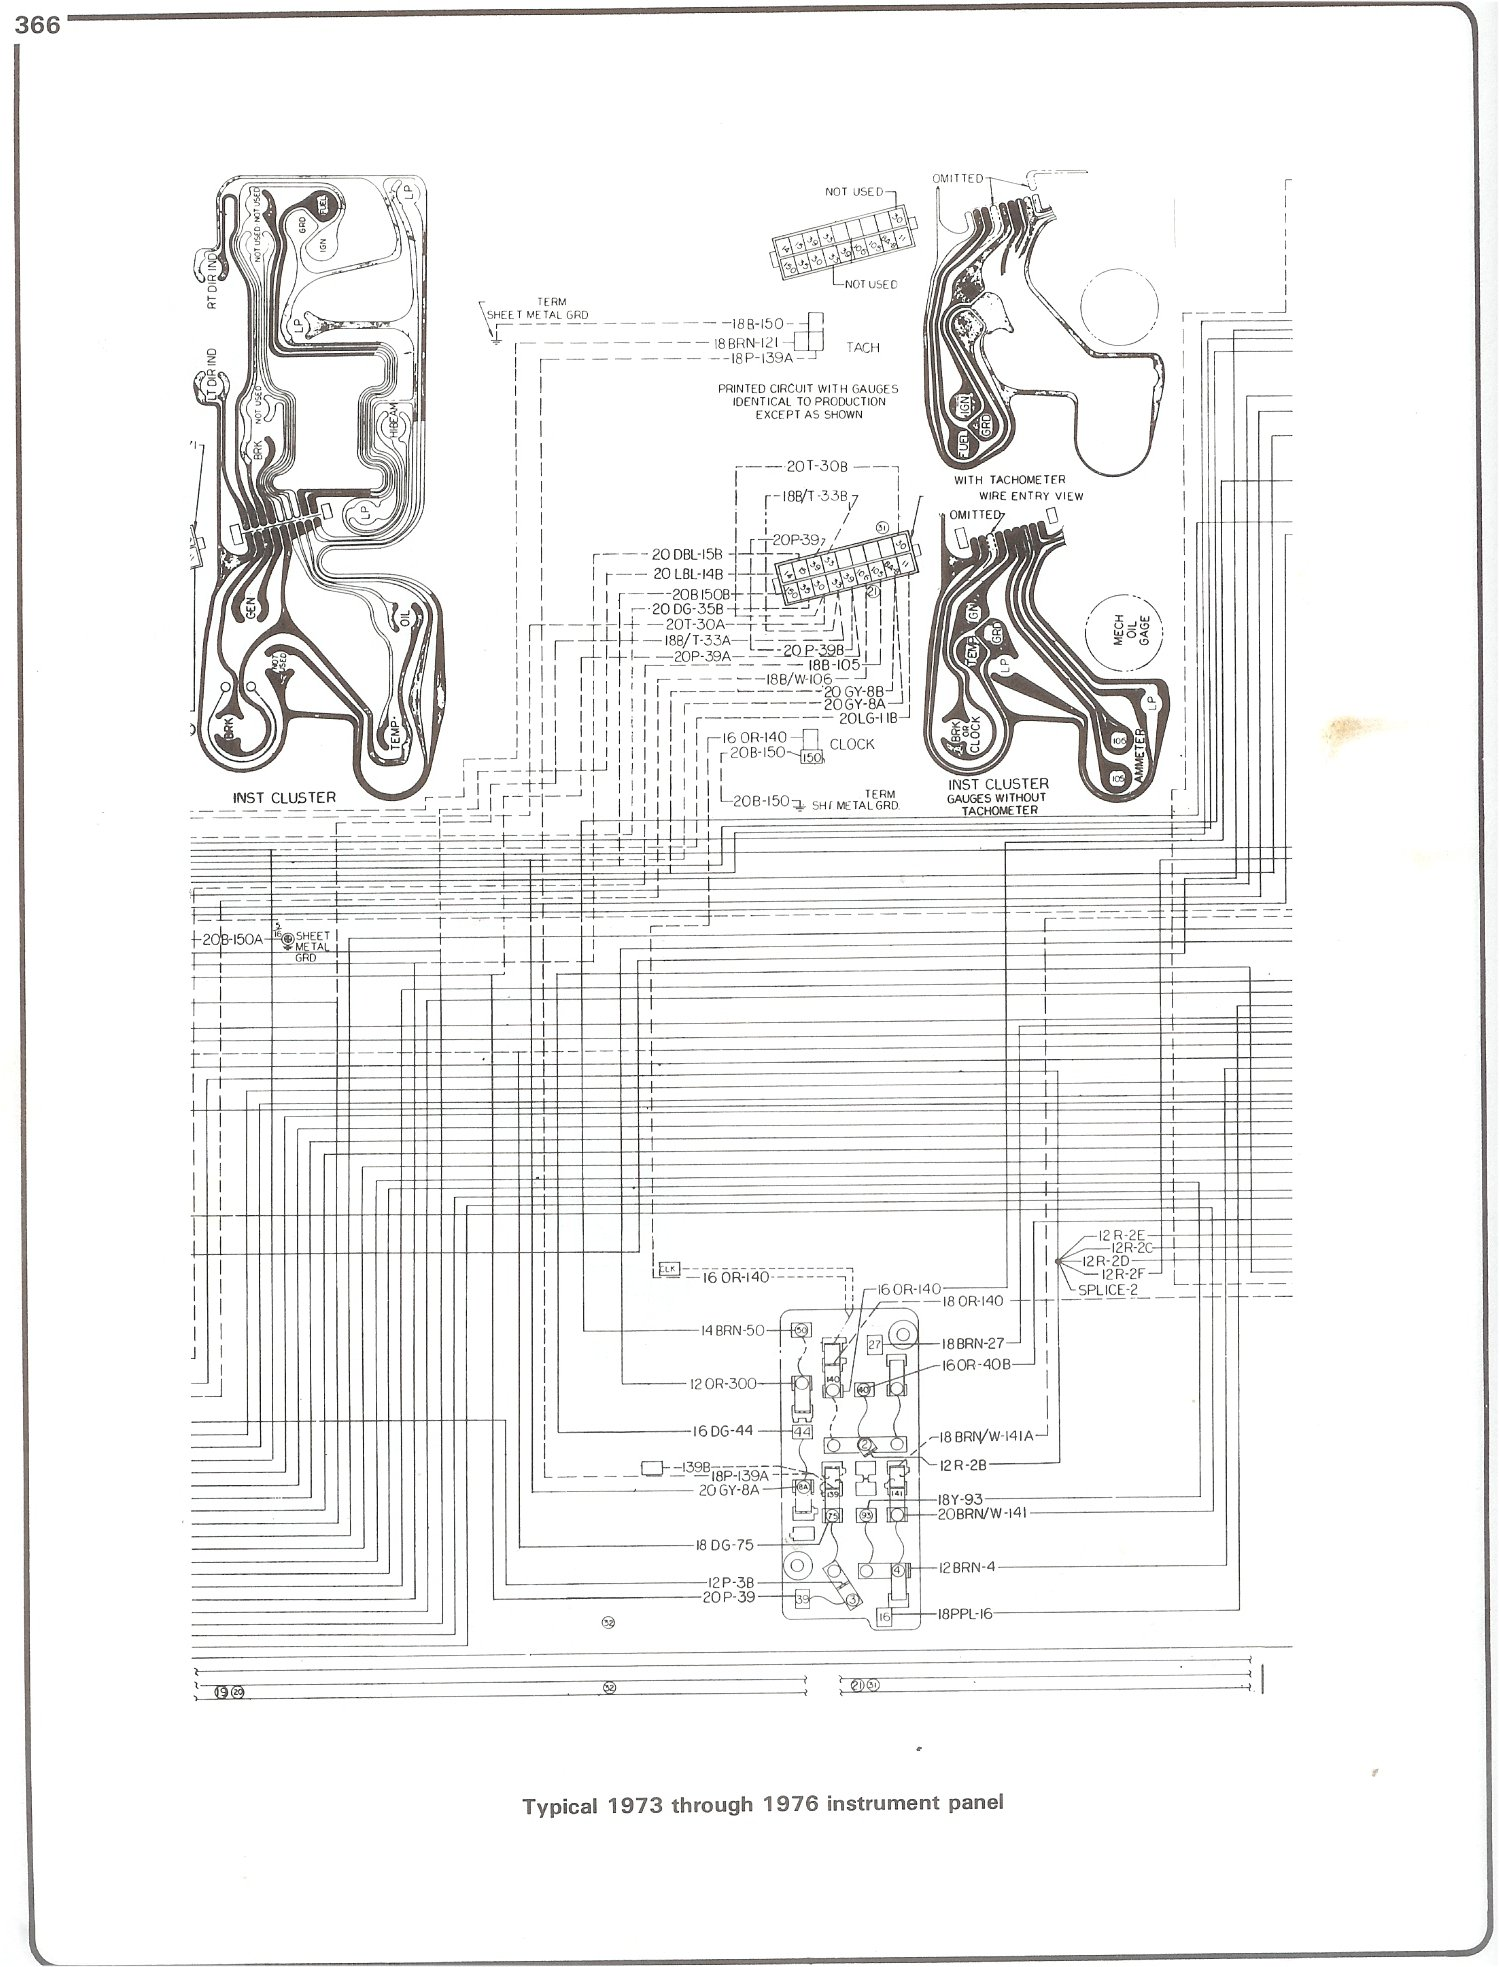 1978 Chevy K10 Wiring Diagram List Of Schematic Circuit Diagram \u2022 Chevy  Wiring Harness Diagram 1978 Chevy Truck Wiring Diagram Headlights